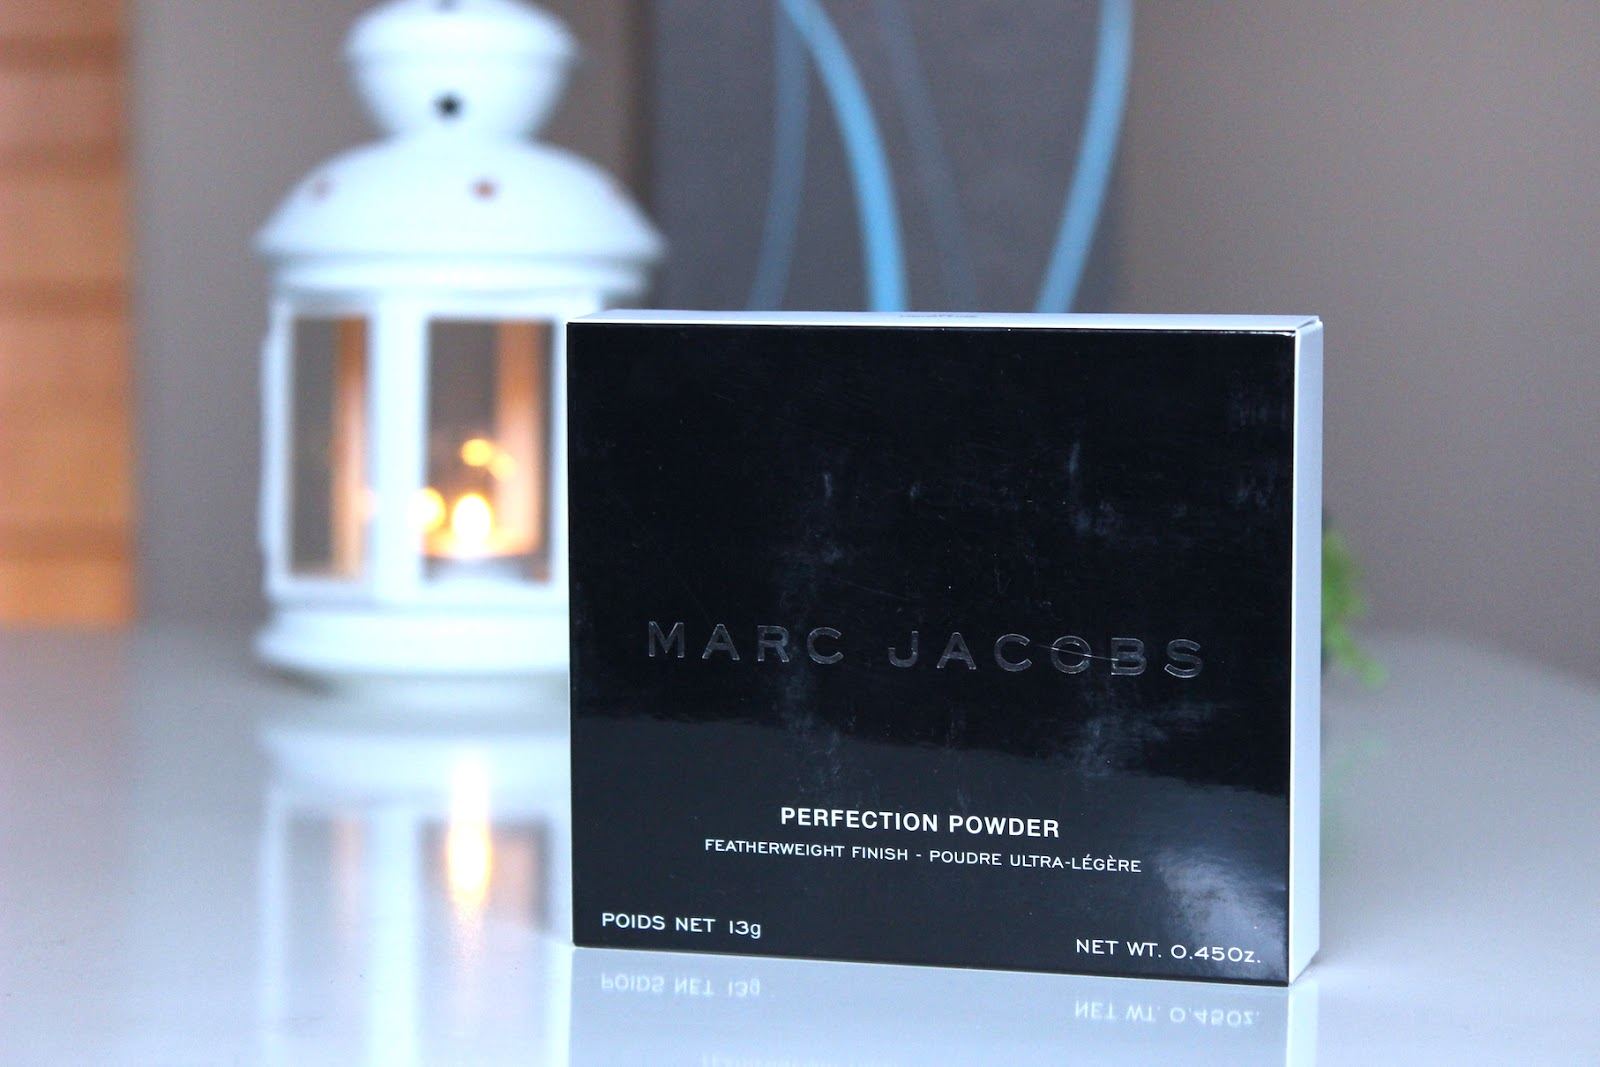 Perfection Powder // Marc Jacobs Beauty